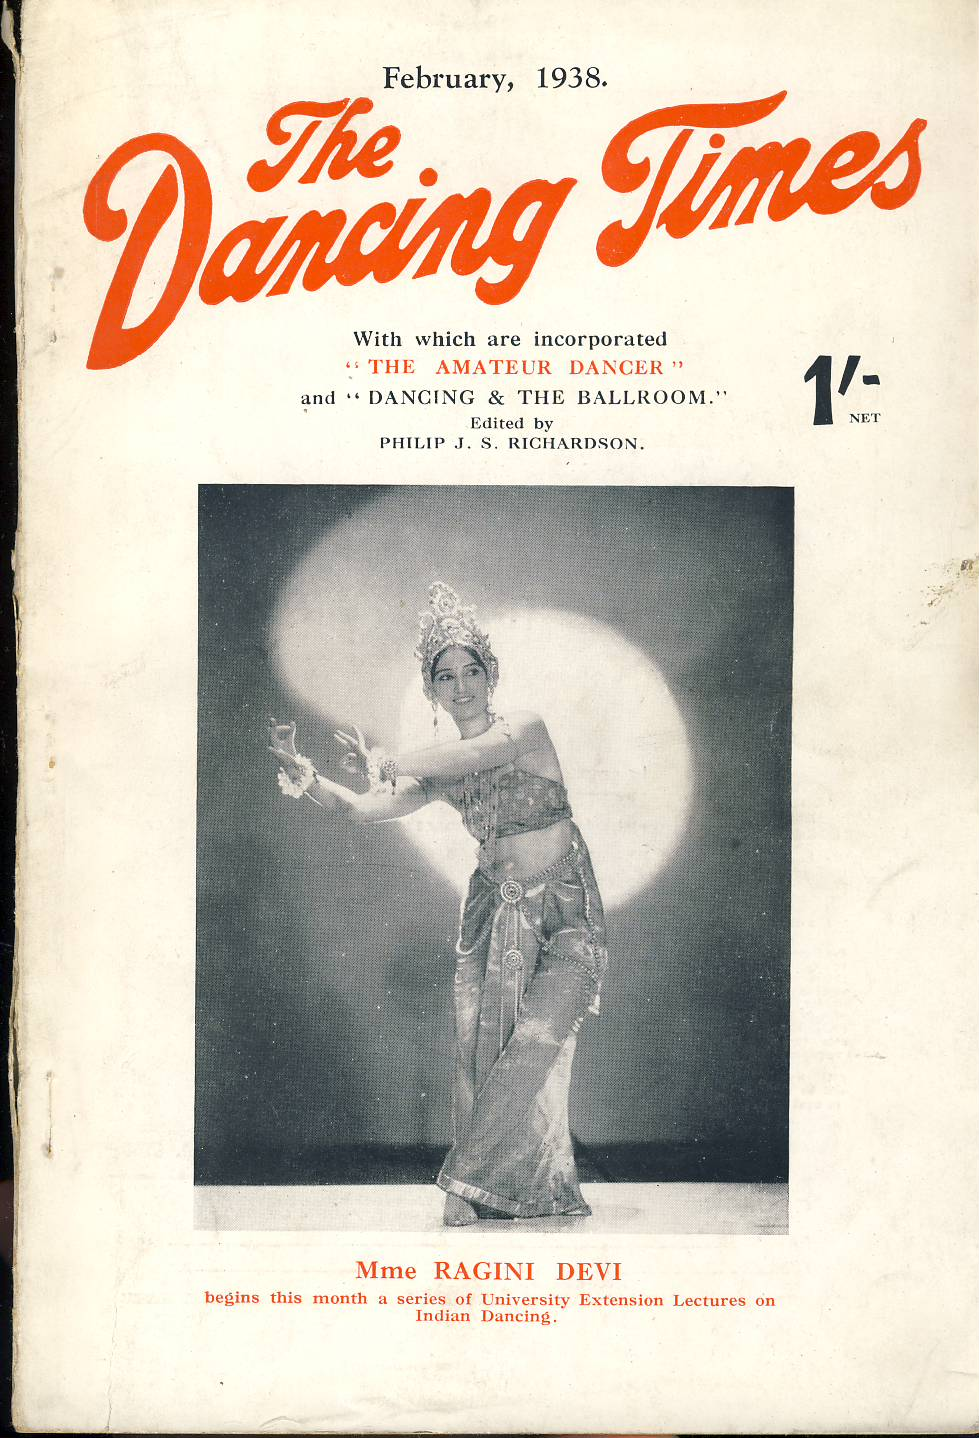 February 1938The Dancing Times magazine Mme RAGINI DEVI Nini Theilade Danish Dancer photo on inside front cover. A review of dancing in its many phases - containing articles and photos. Some vintage adverts for dancing schools. This is a vintage magazine. Text and photos clean and bright inside. The covers are badly marked with scuffs and tears to spines. Staples rusting so cover coming away from text. Please read the full description and see photo.